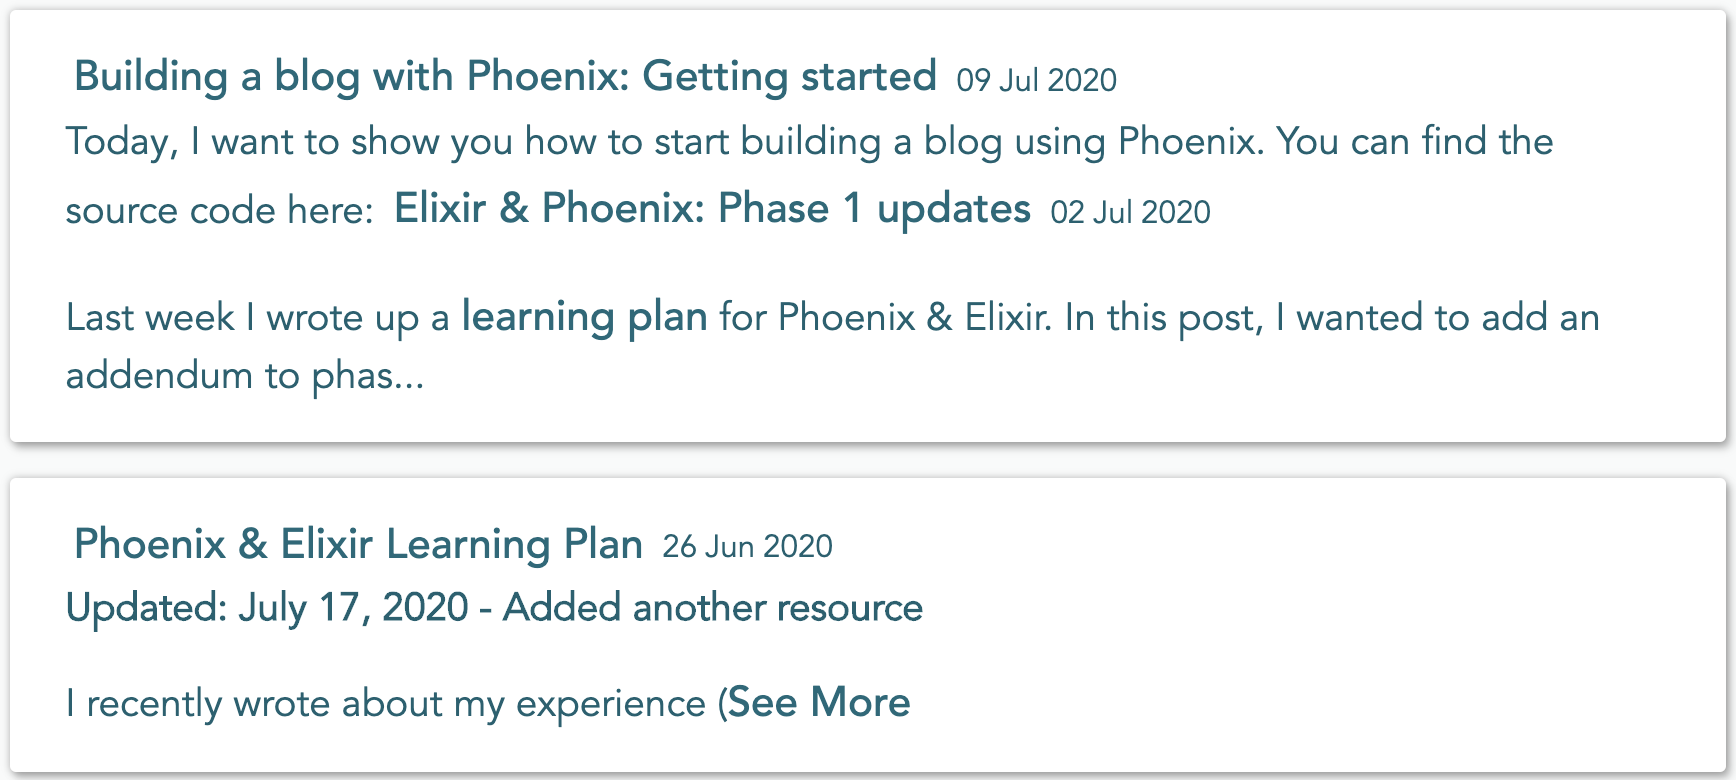 Post excerpt that is rendering links but it's adding extra html elements